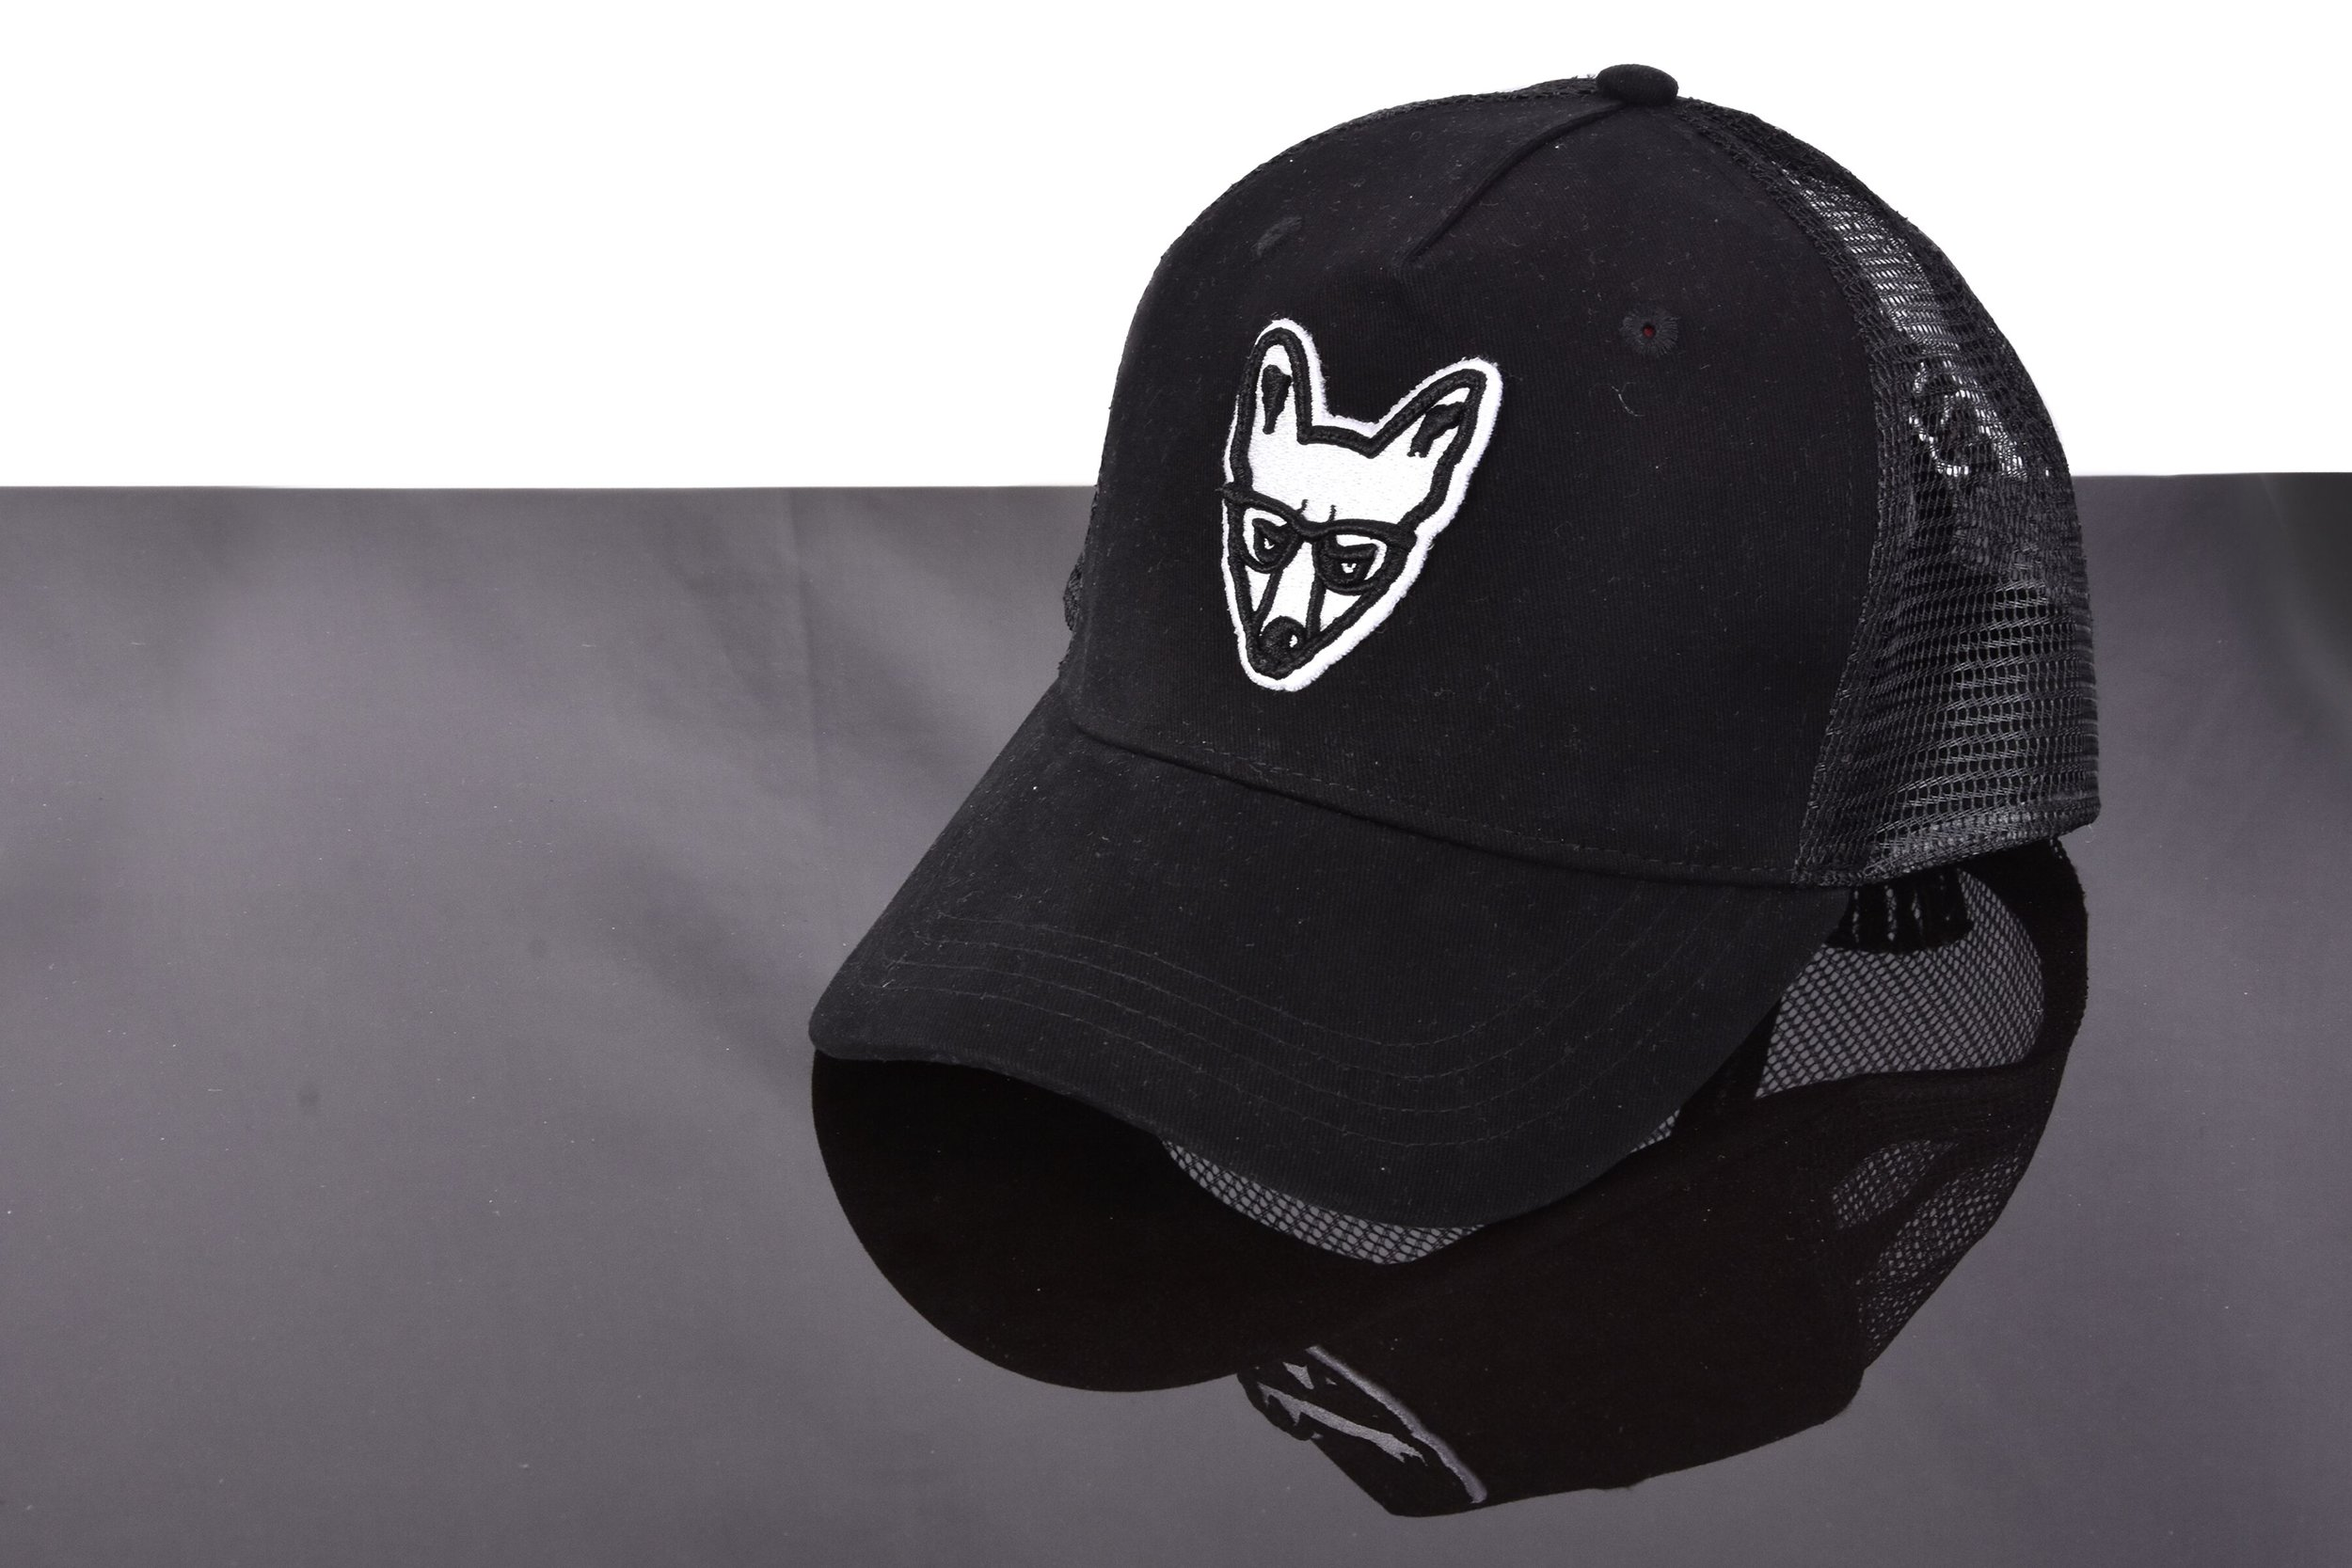 New SS19 Trademark Fox Logo Curved Peak Mesh Cap available at £34.99